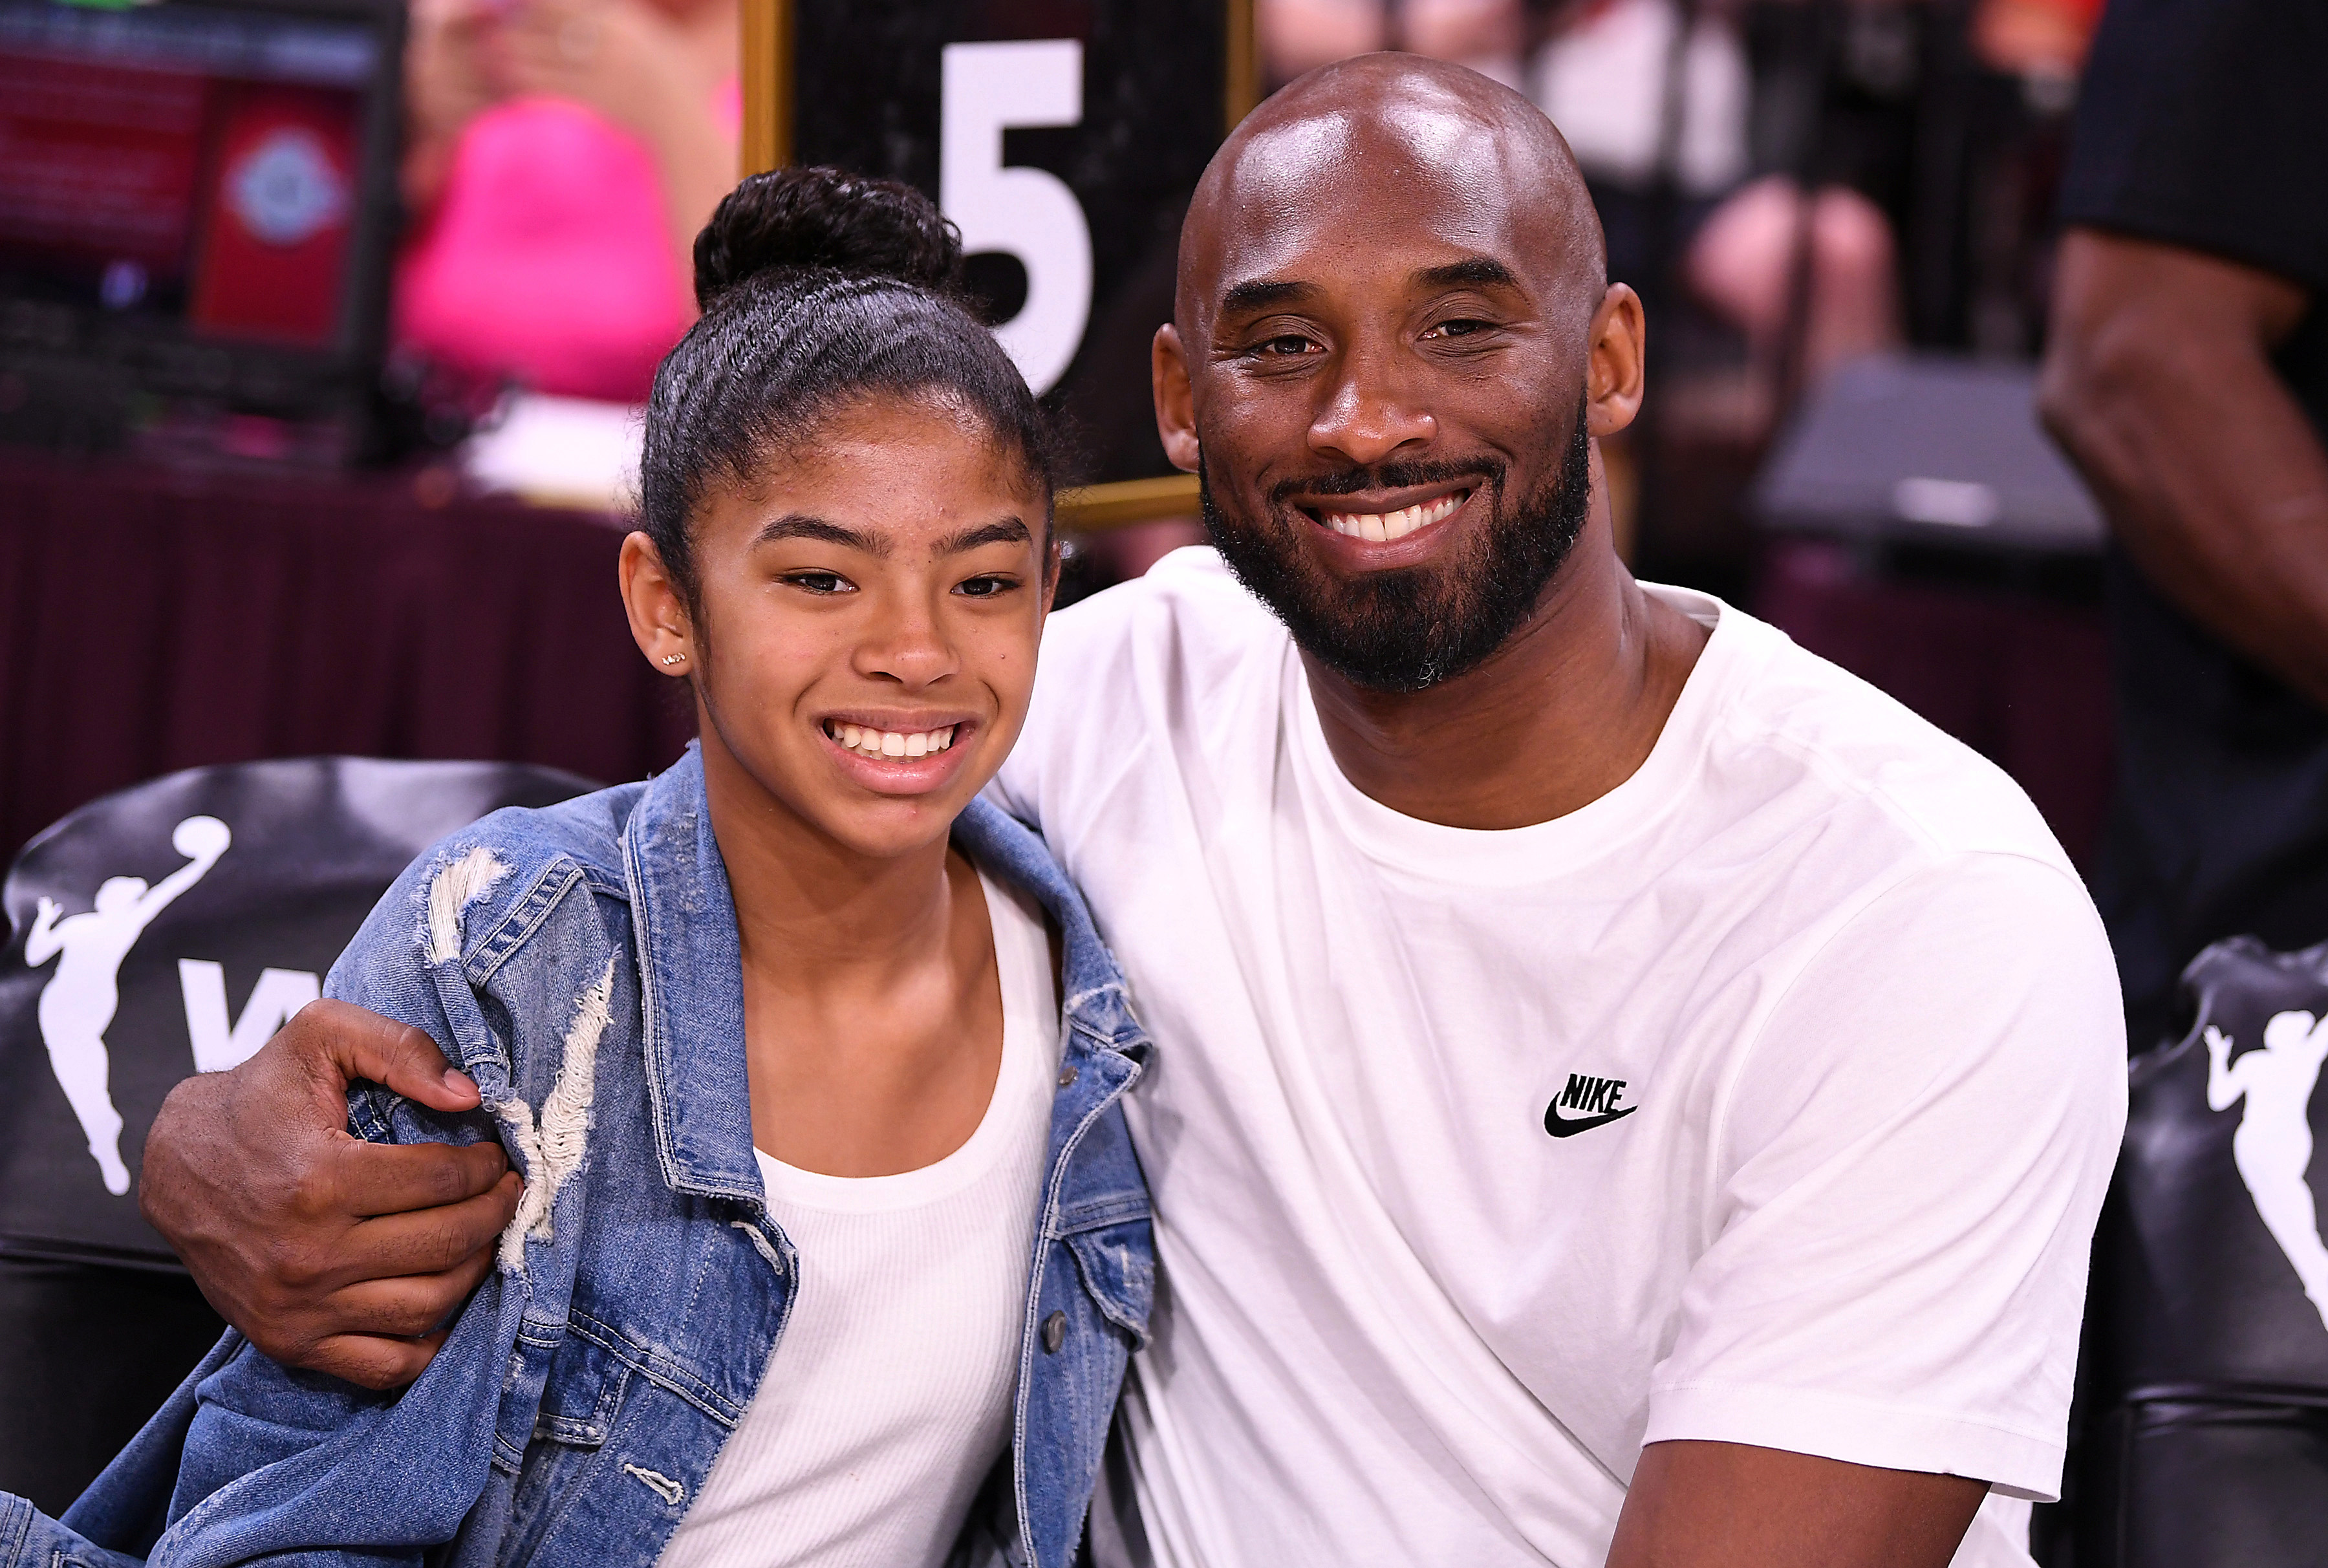 Bryant and his daughter bonded over their love for basketball